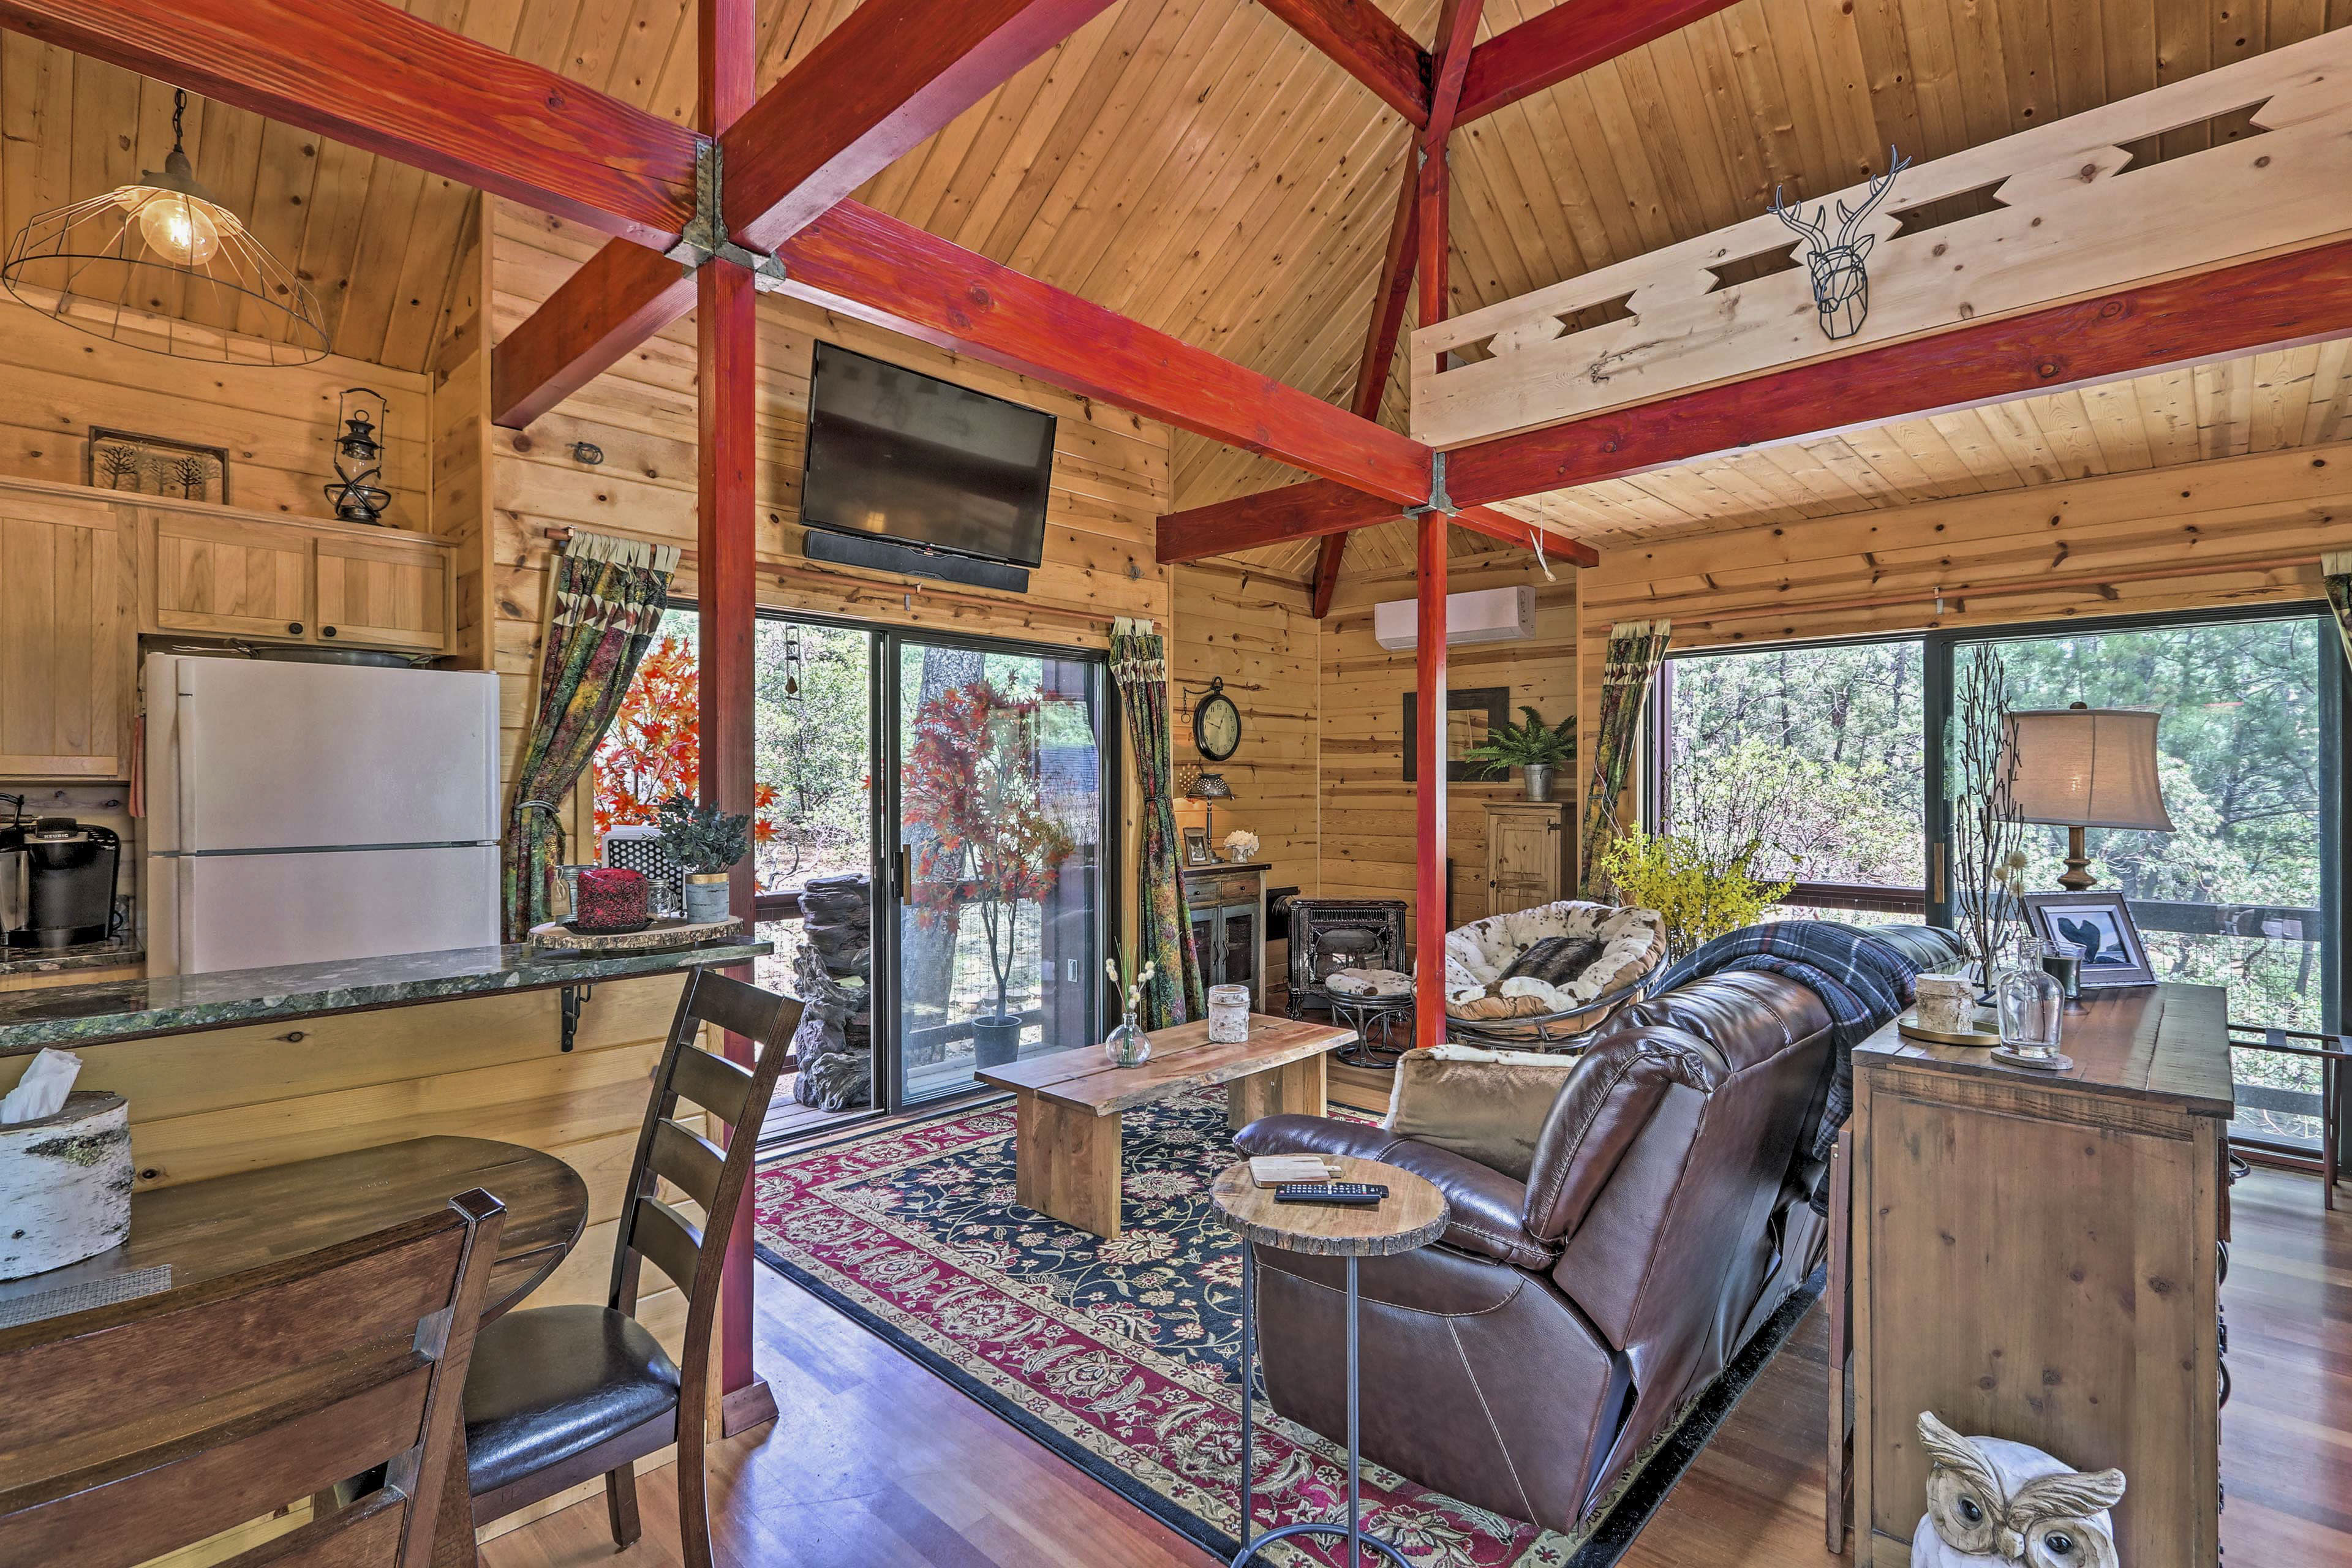 Interior Space / Open Layout / Air Conditioning / Wood-Burning Stove